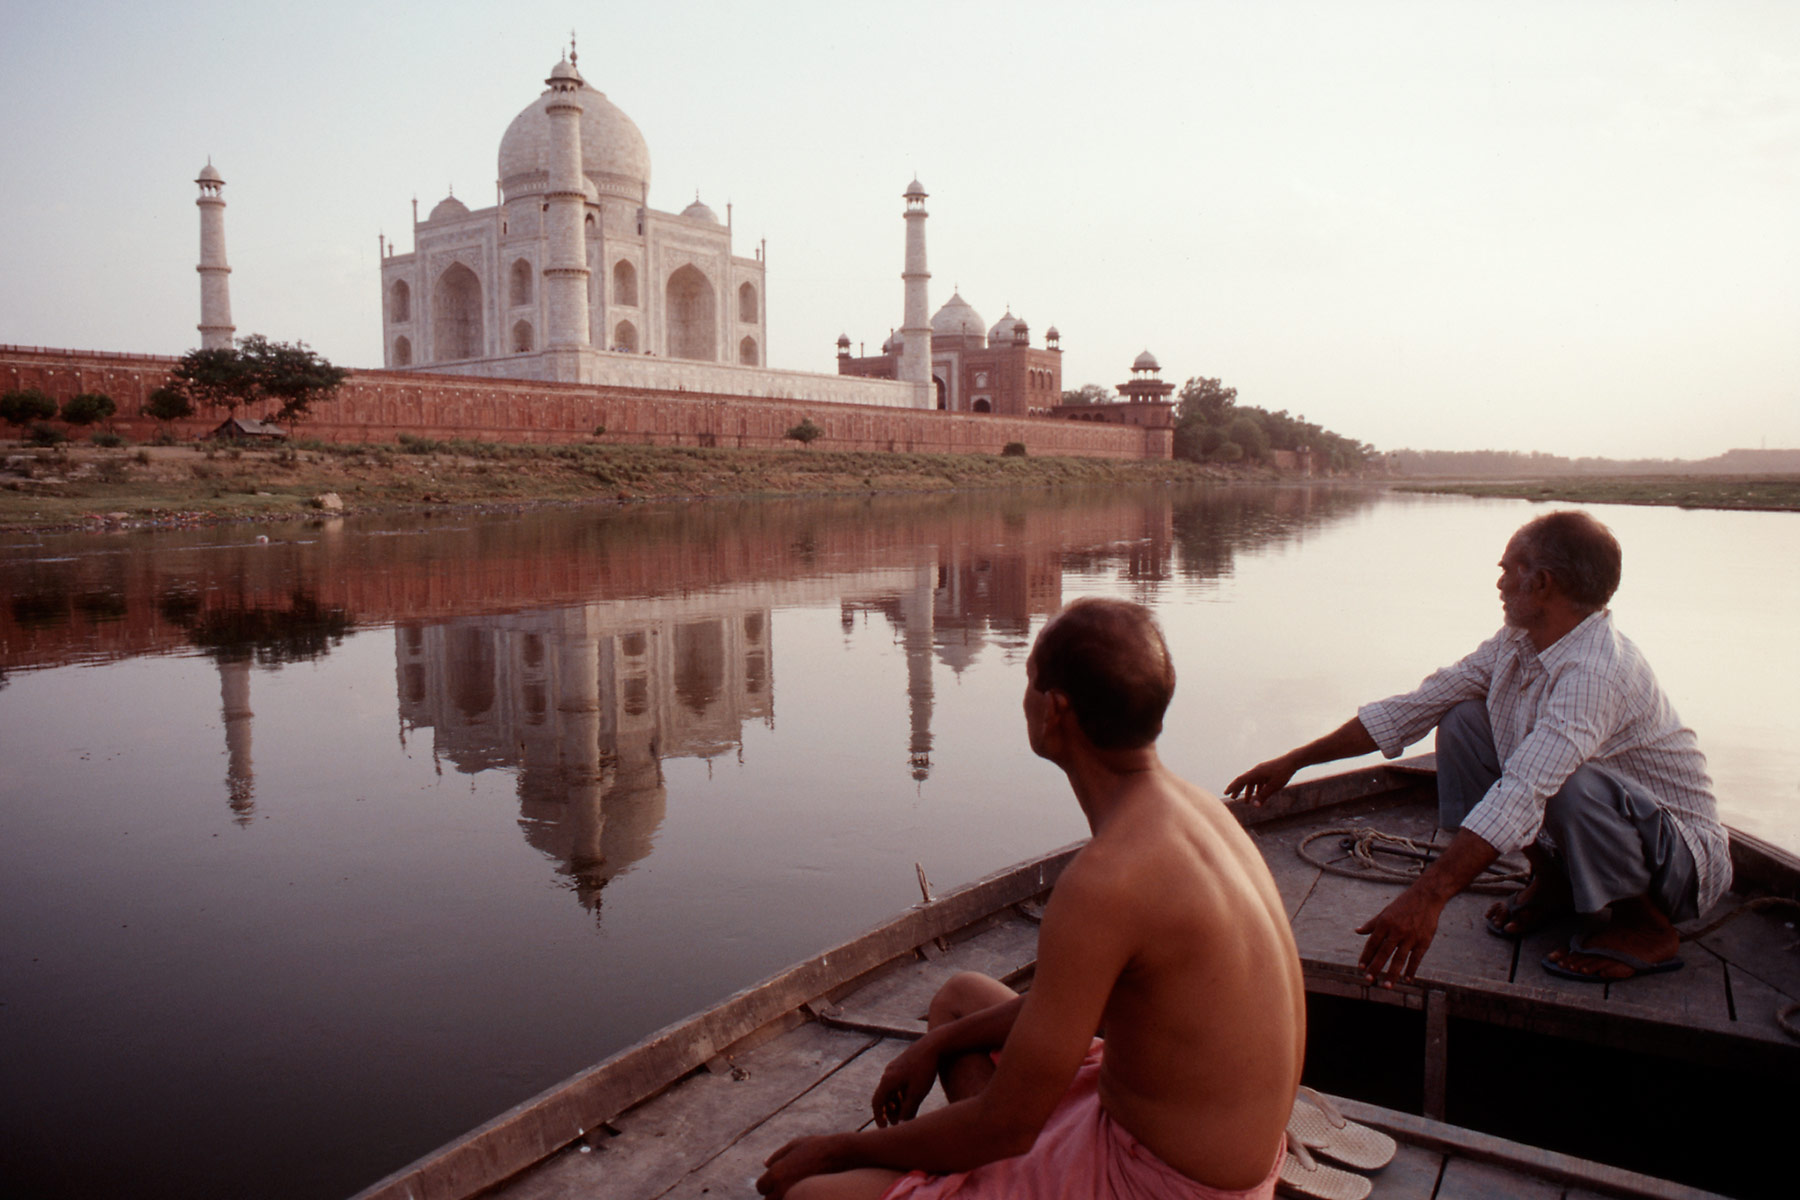 021-taj-from-boat